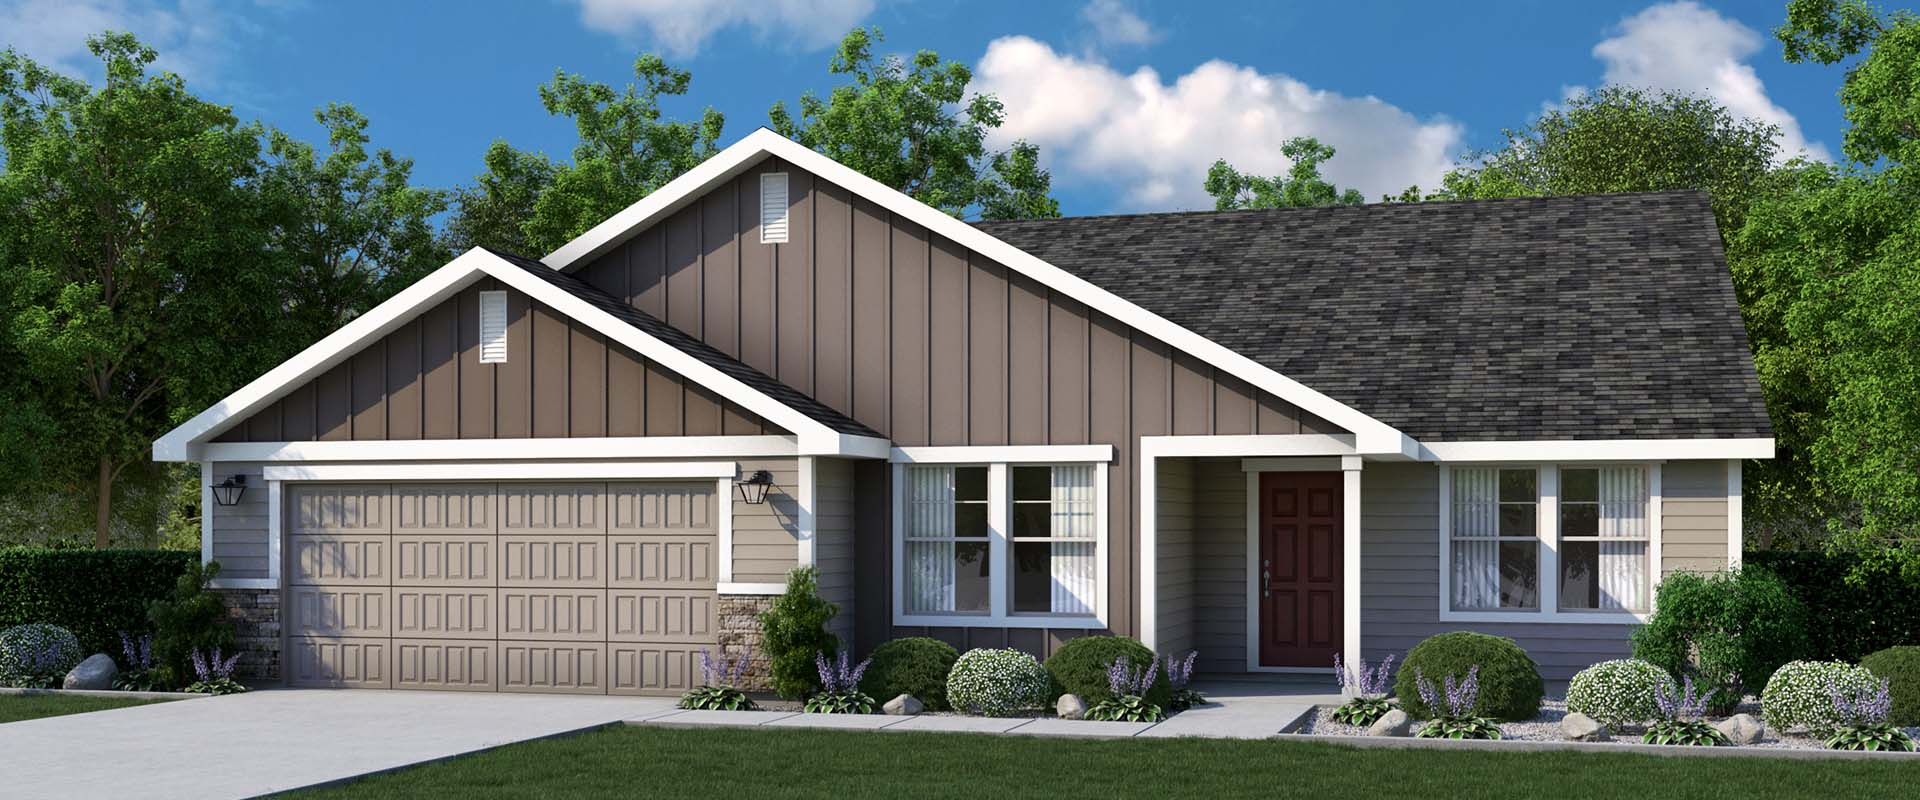 Emerald-new-homes-boise-idaho-hubble-homes_0000_Emerald Tradition_Pack 071.jpg